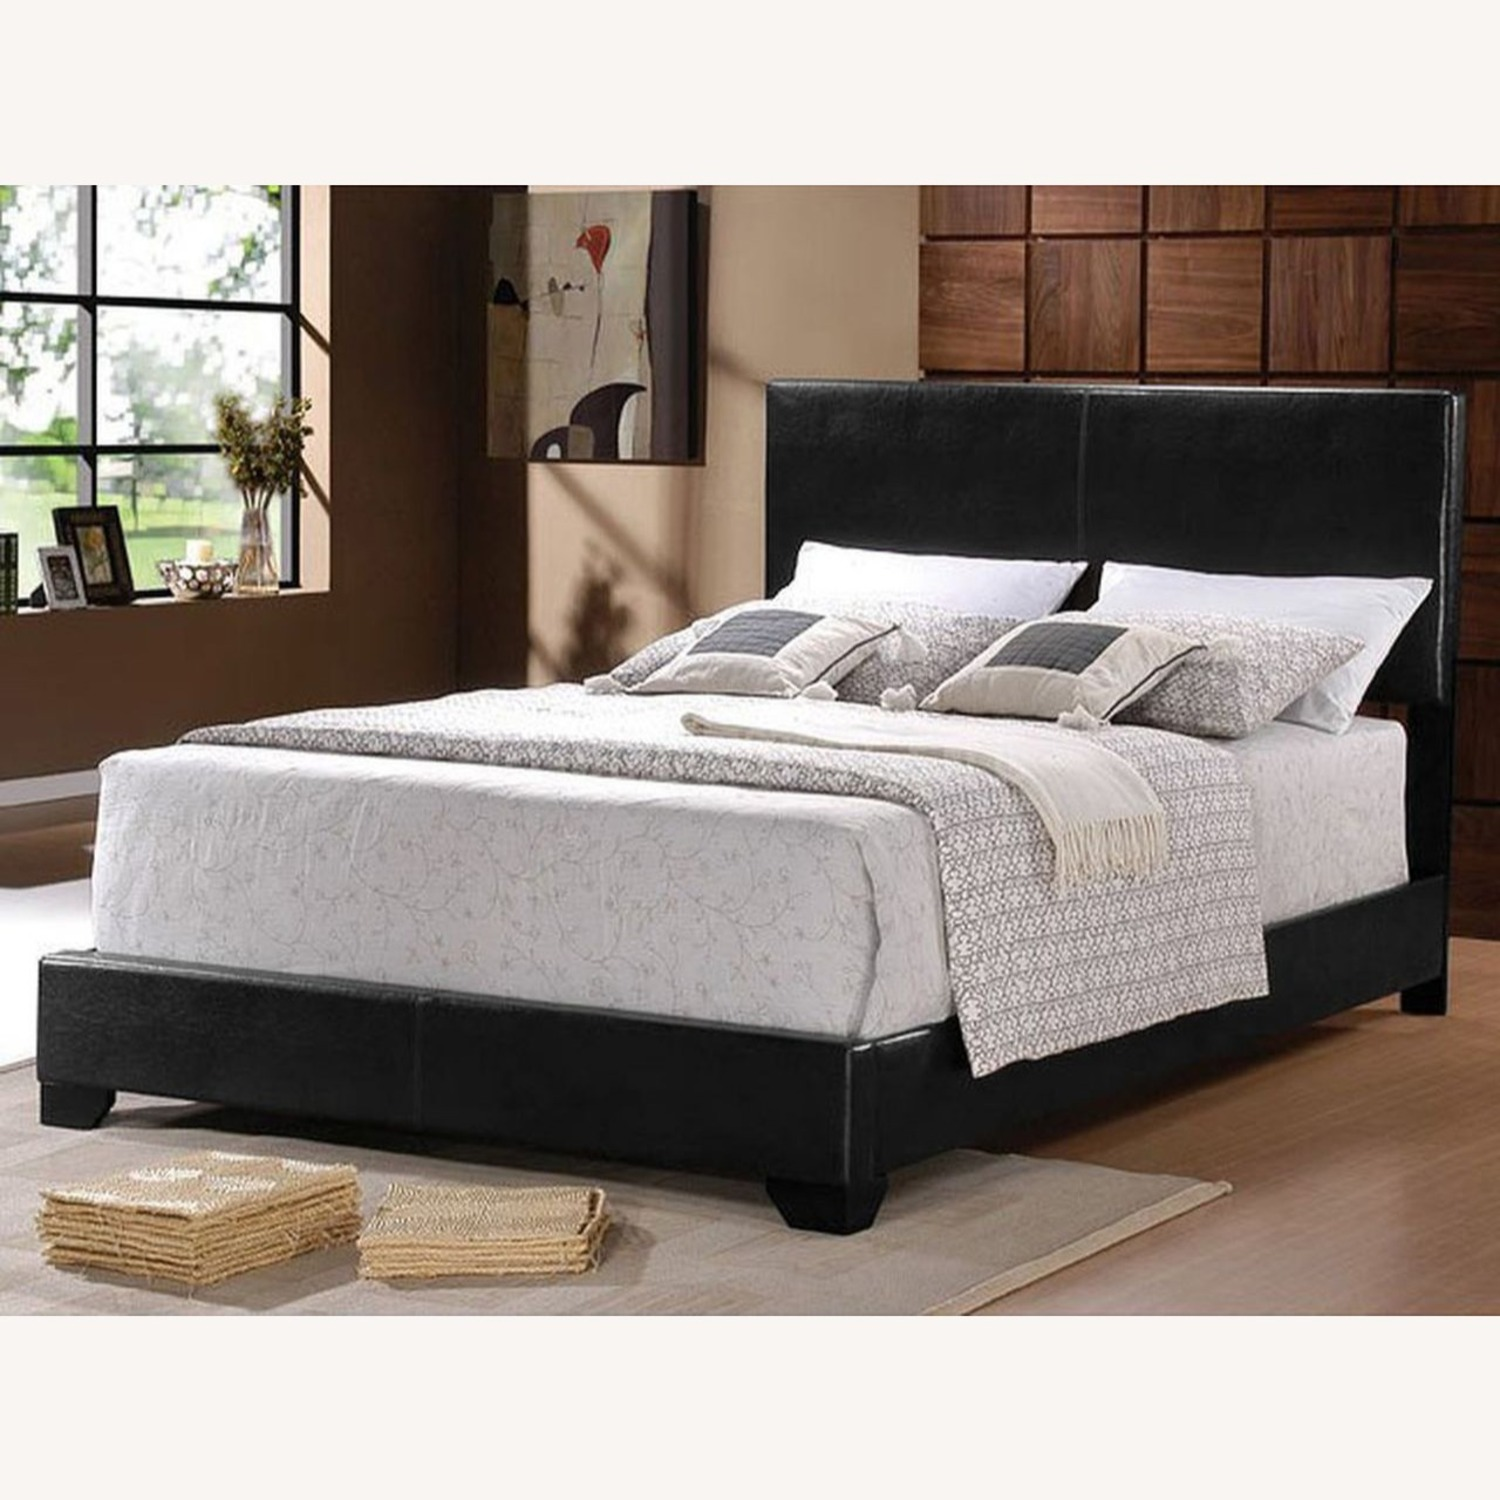 Full Bed In Black Finish W/ Black Leatherette - image-3